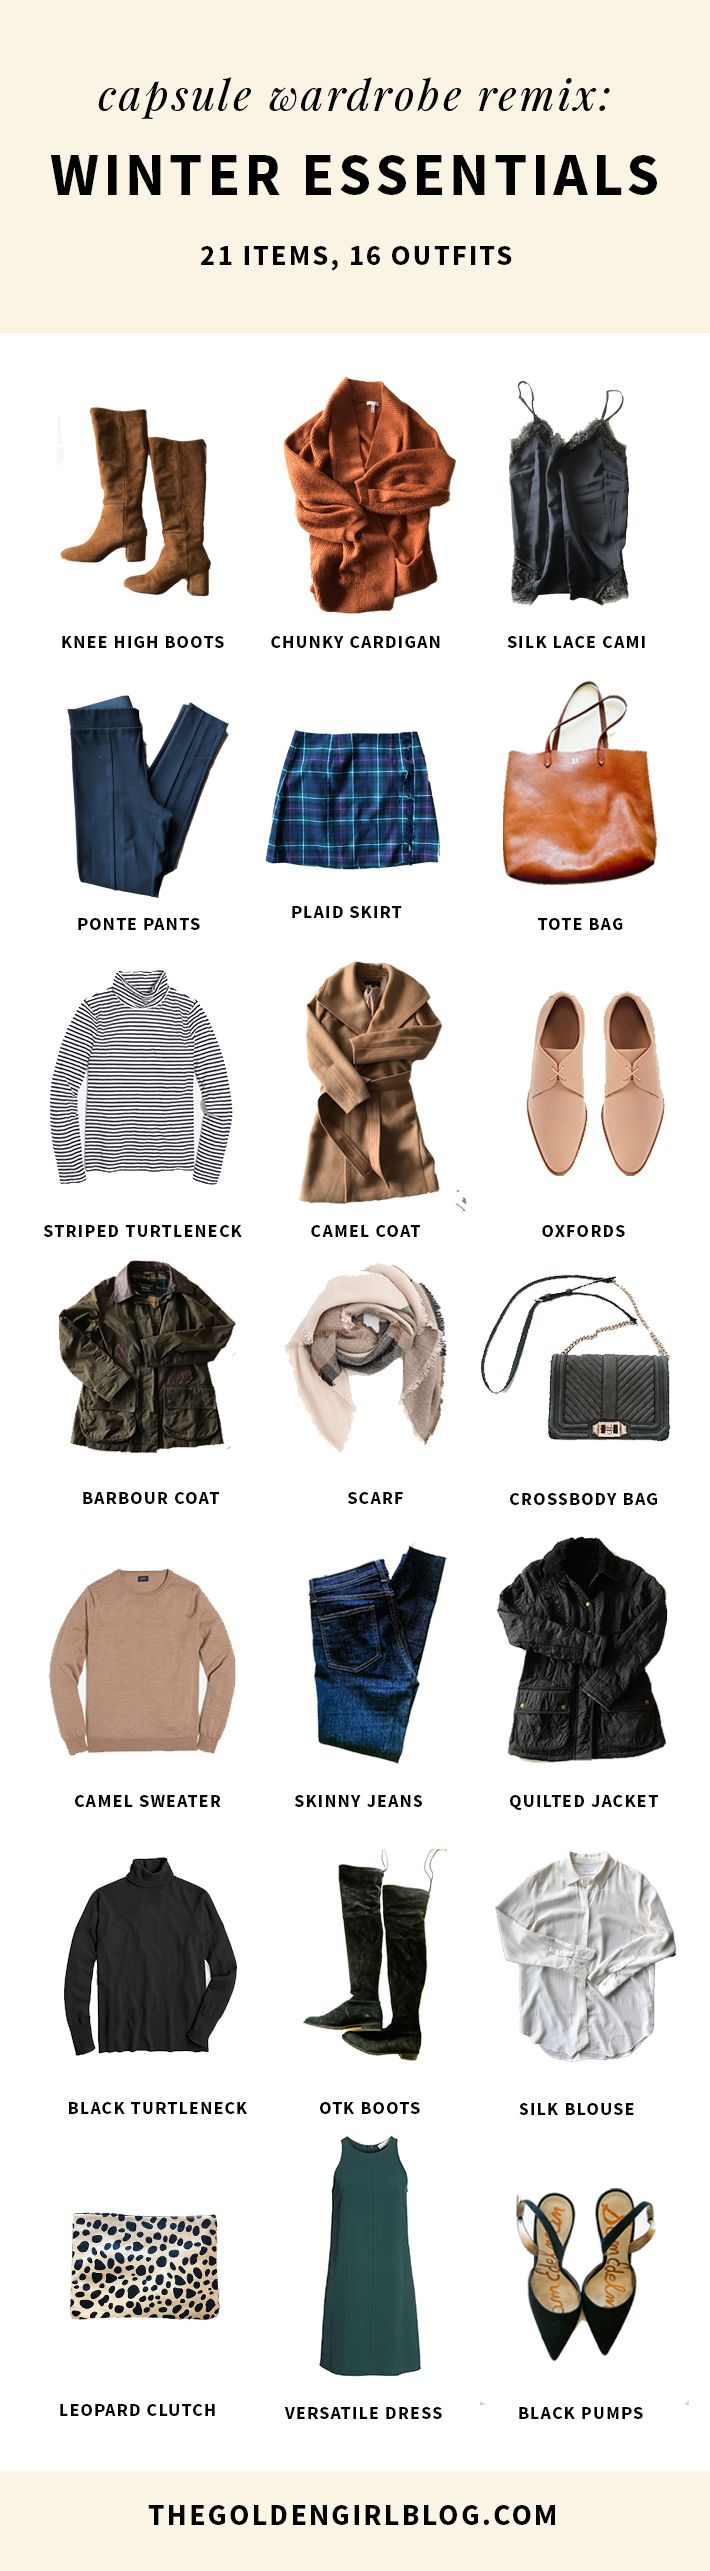 Capsule Wardrobe Remix: Winter Capsule Wardrobe–21 Items, 16 Outfits!